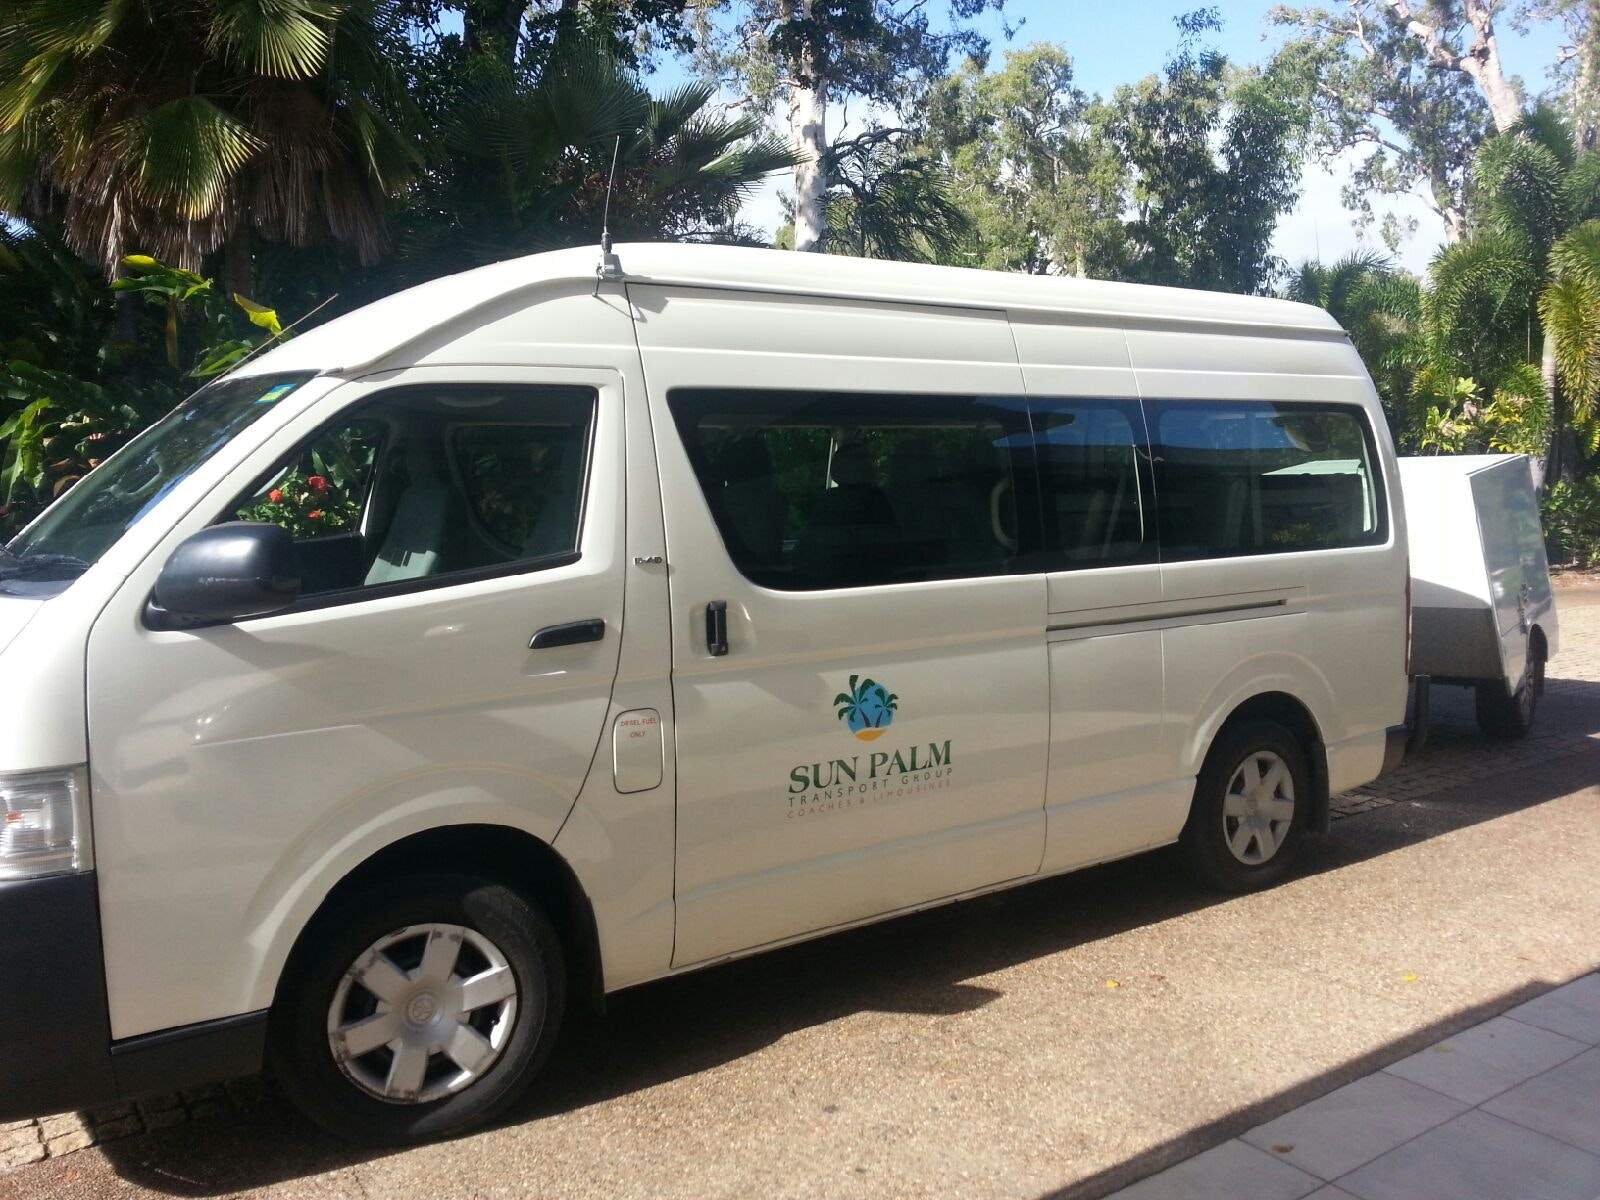 Sun Palm Transport Group vehicle 1